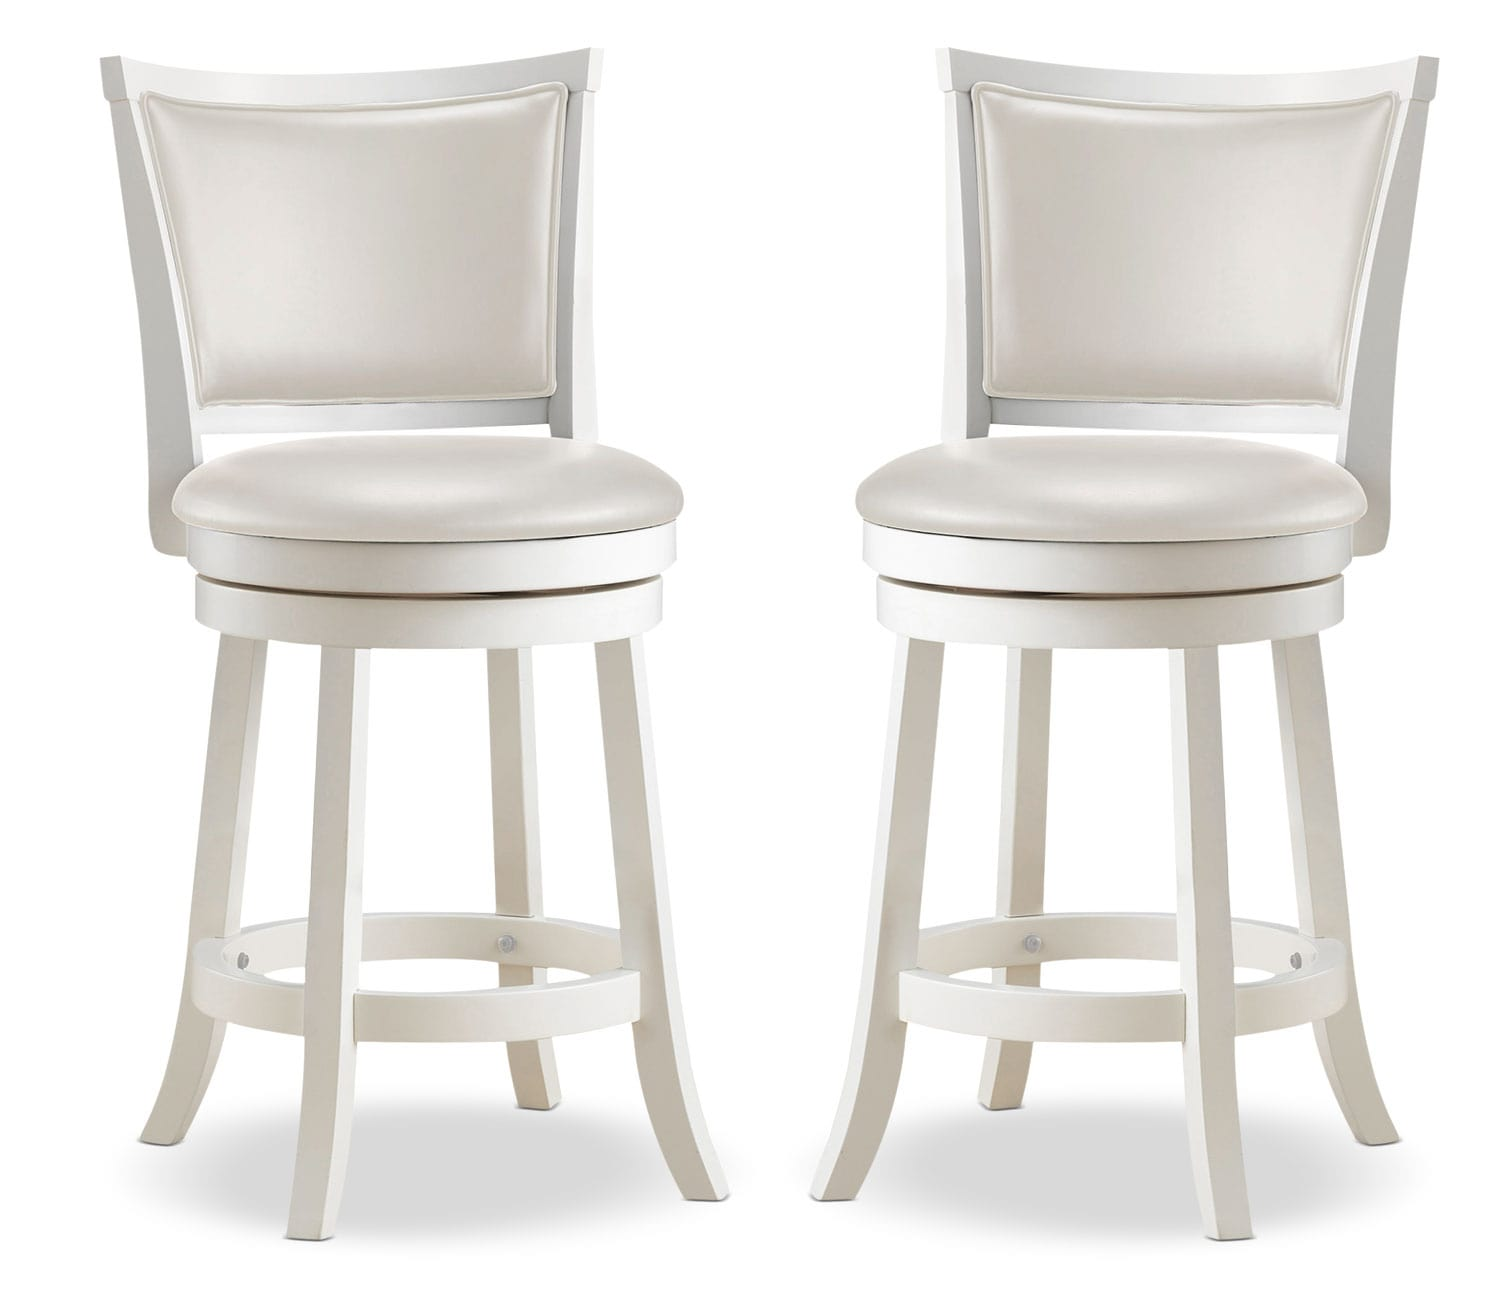 Woodgrove Counter-Height Dining Stool, Set of 2